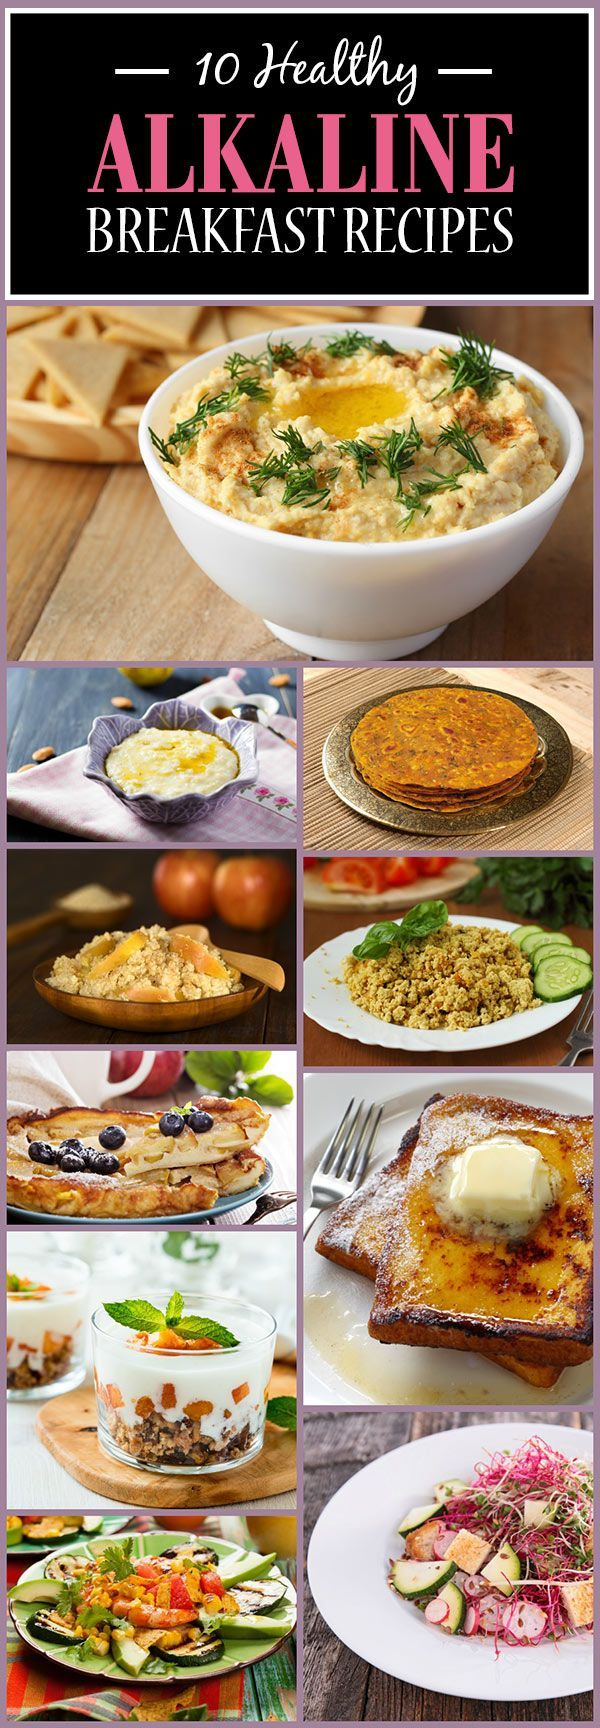 10 Healthy Alkaline Breakfast Recipes You Must Try